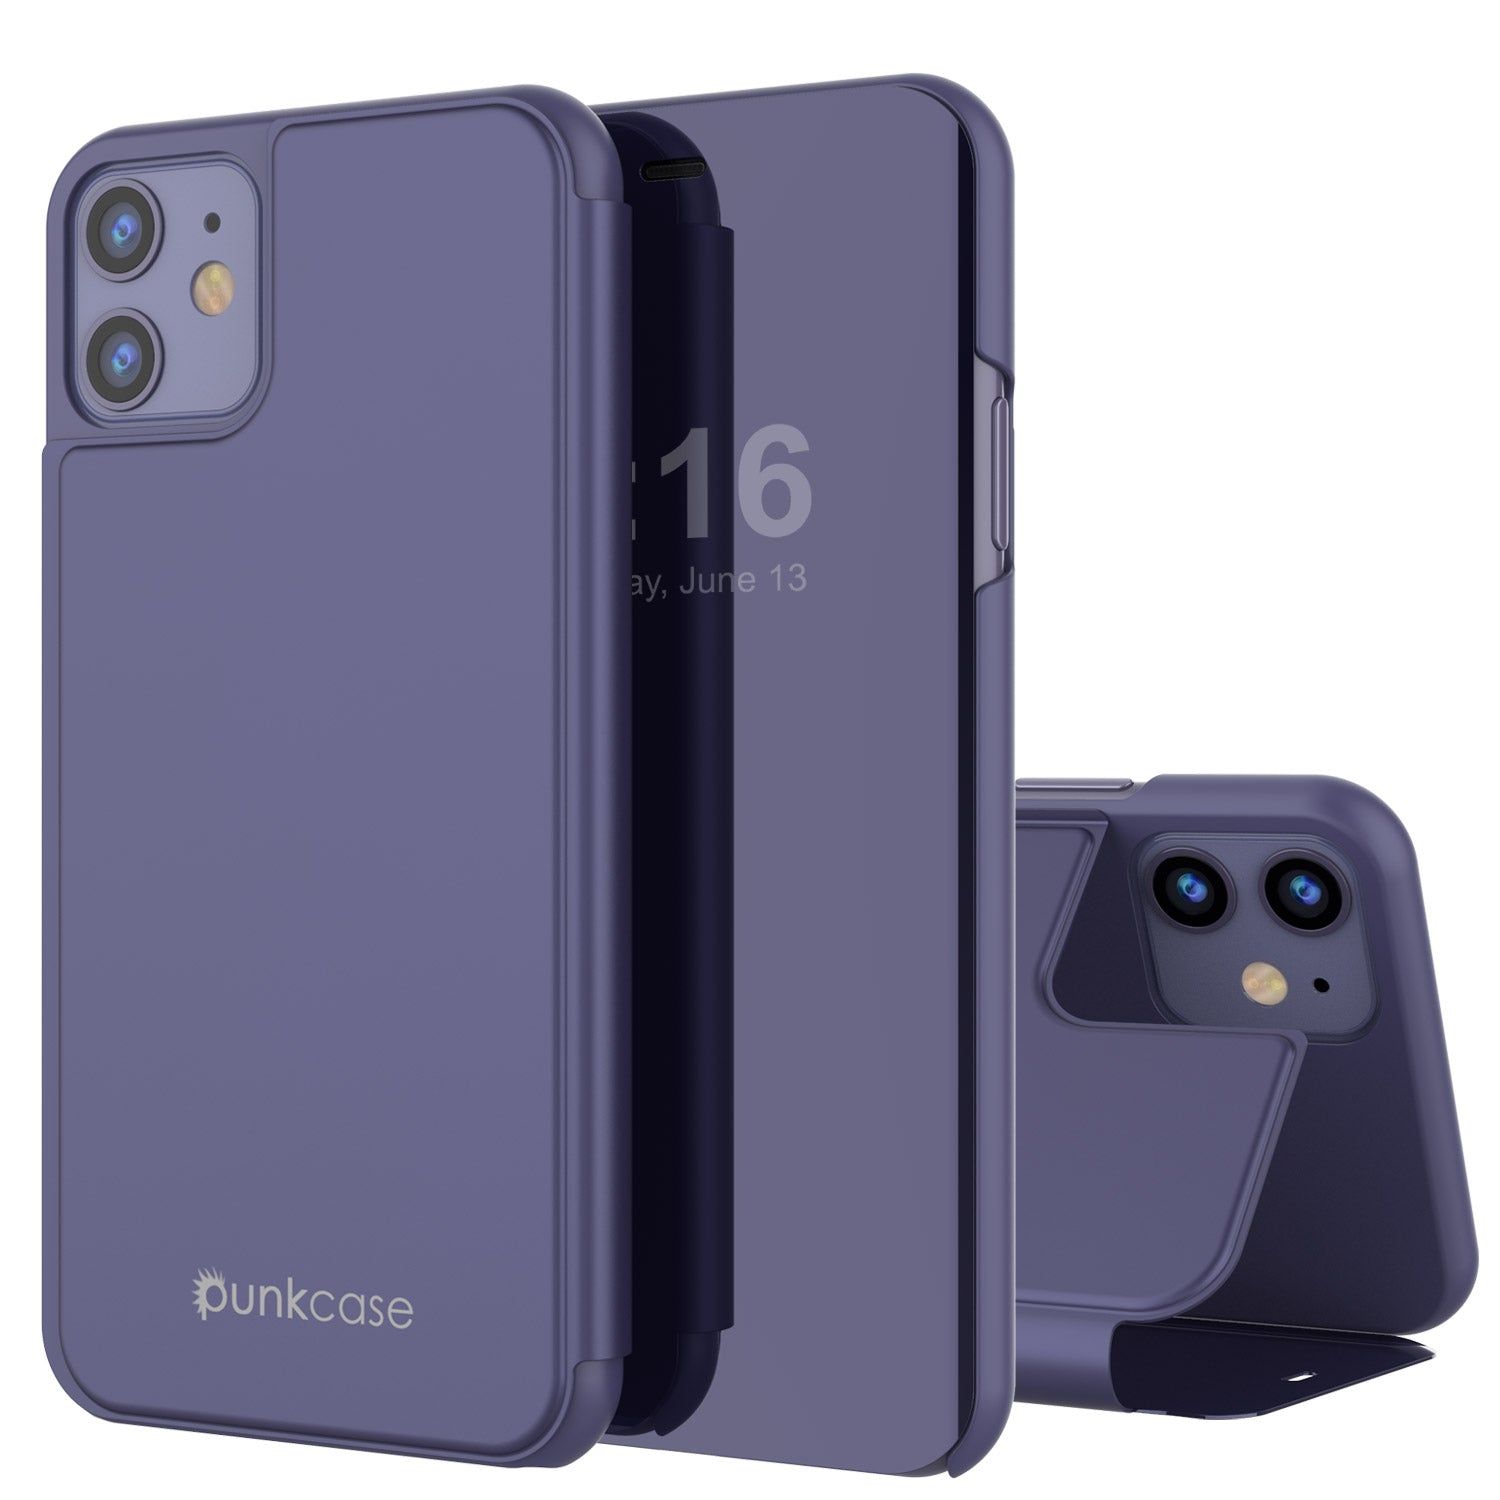 Punkcase iPhone 11 Reflector Case Protective Flip Cover [Purple]